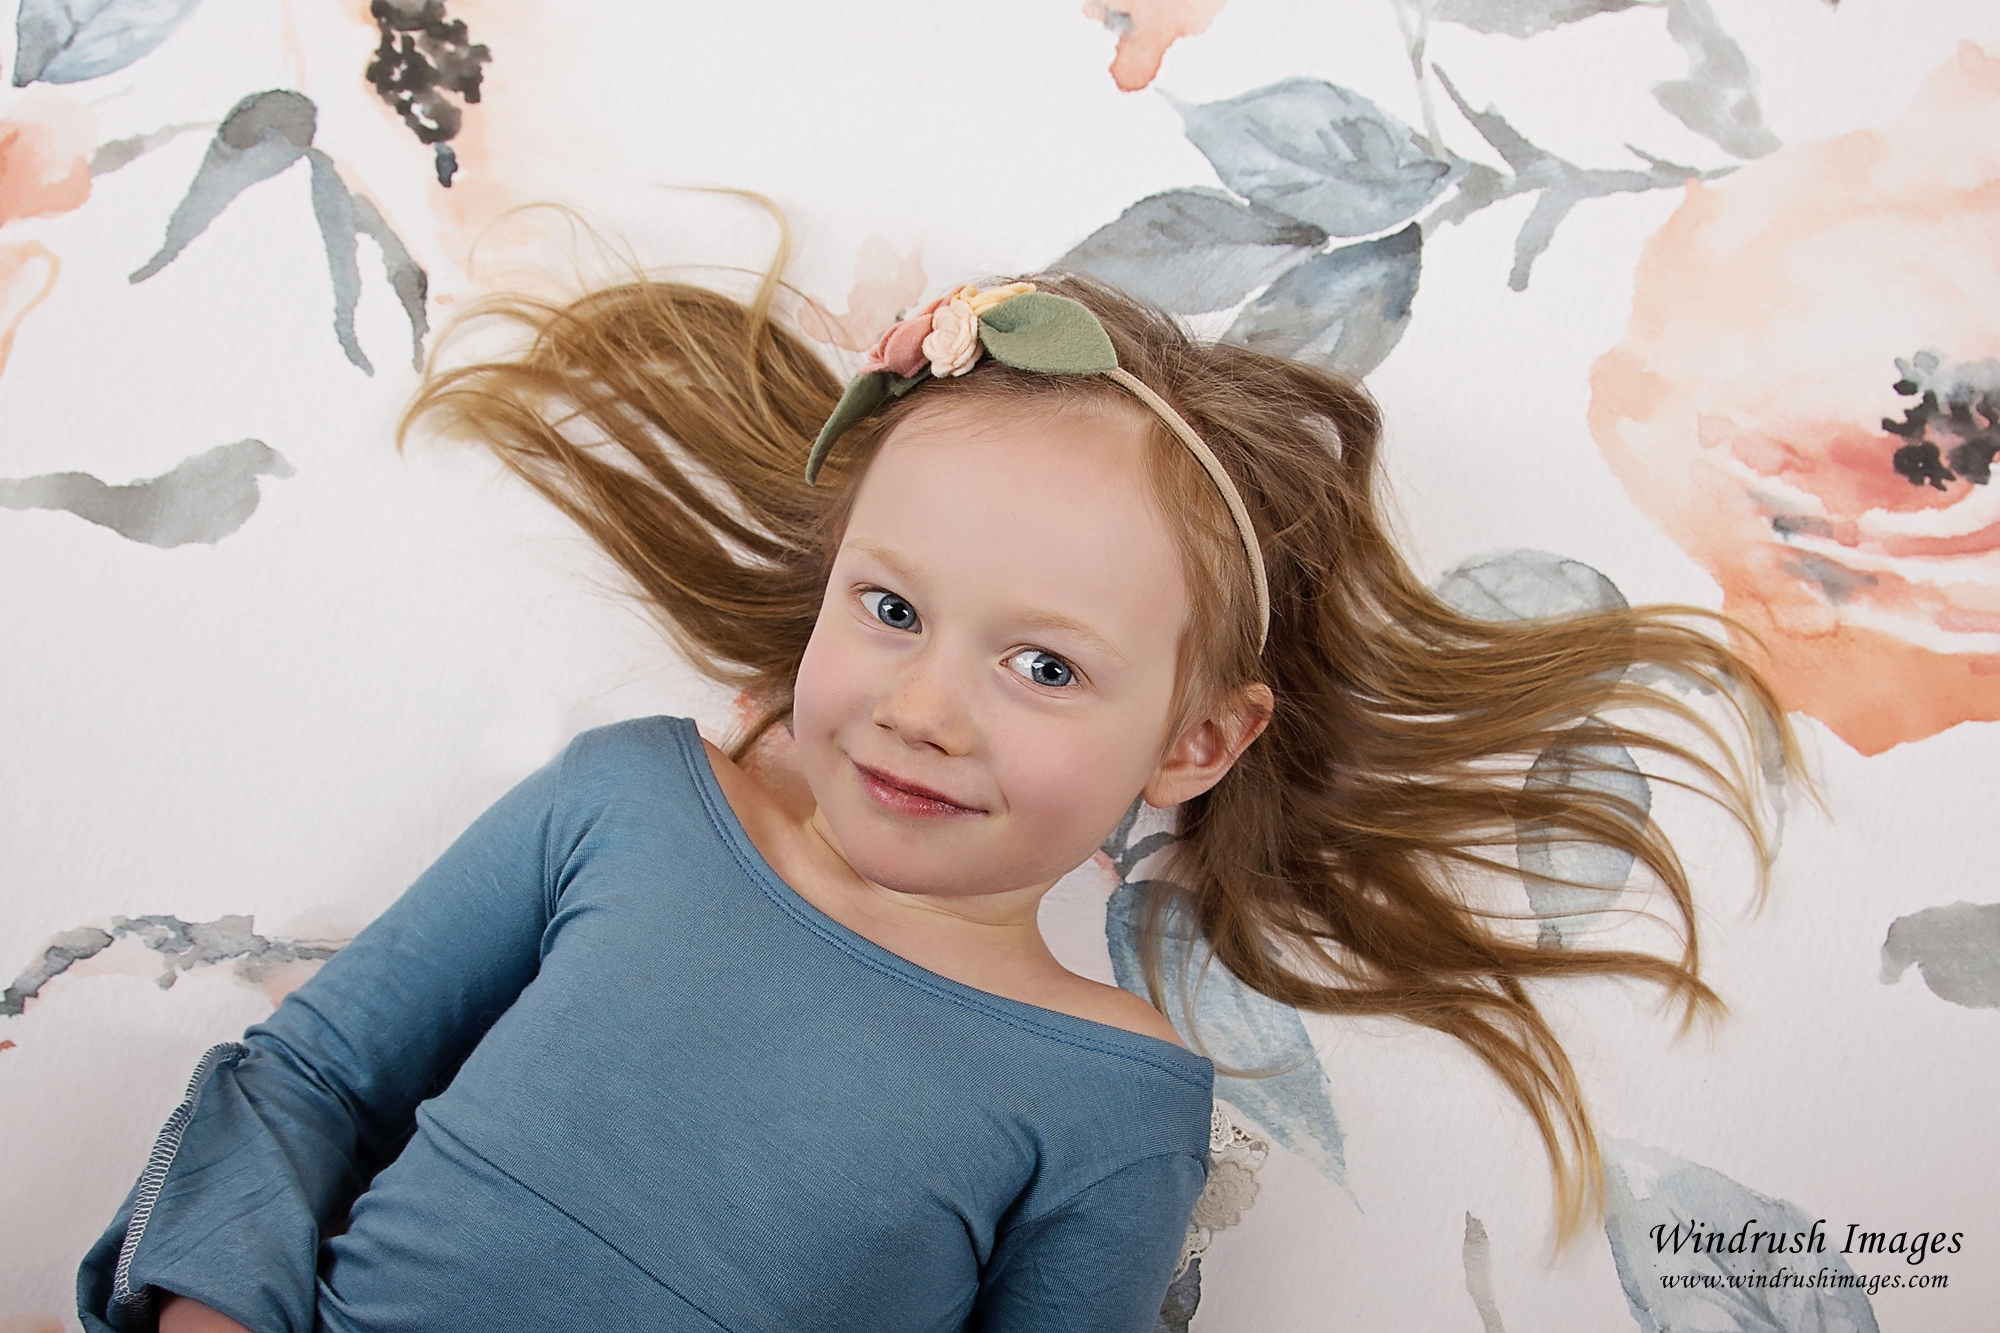 Beautiful girl with hair spread out resting on peach floral background for spring photos in Calgary